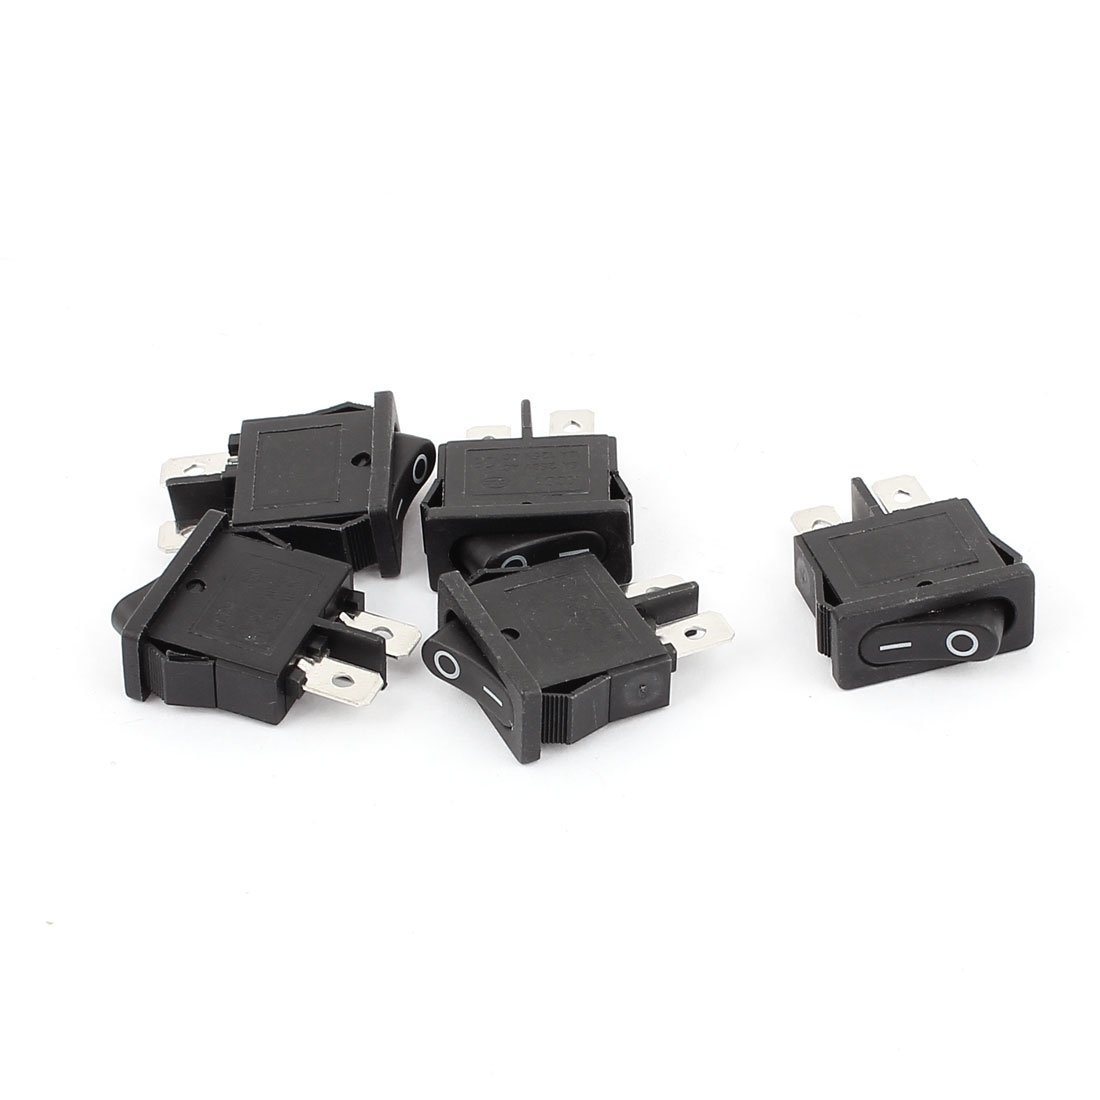 uxcell AC 250V 6A AC 125V 10A SPST 2 Terminals Power Boat Rocker Switch 5PCS